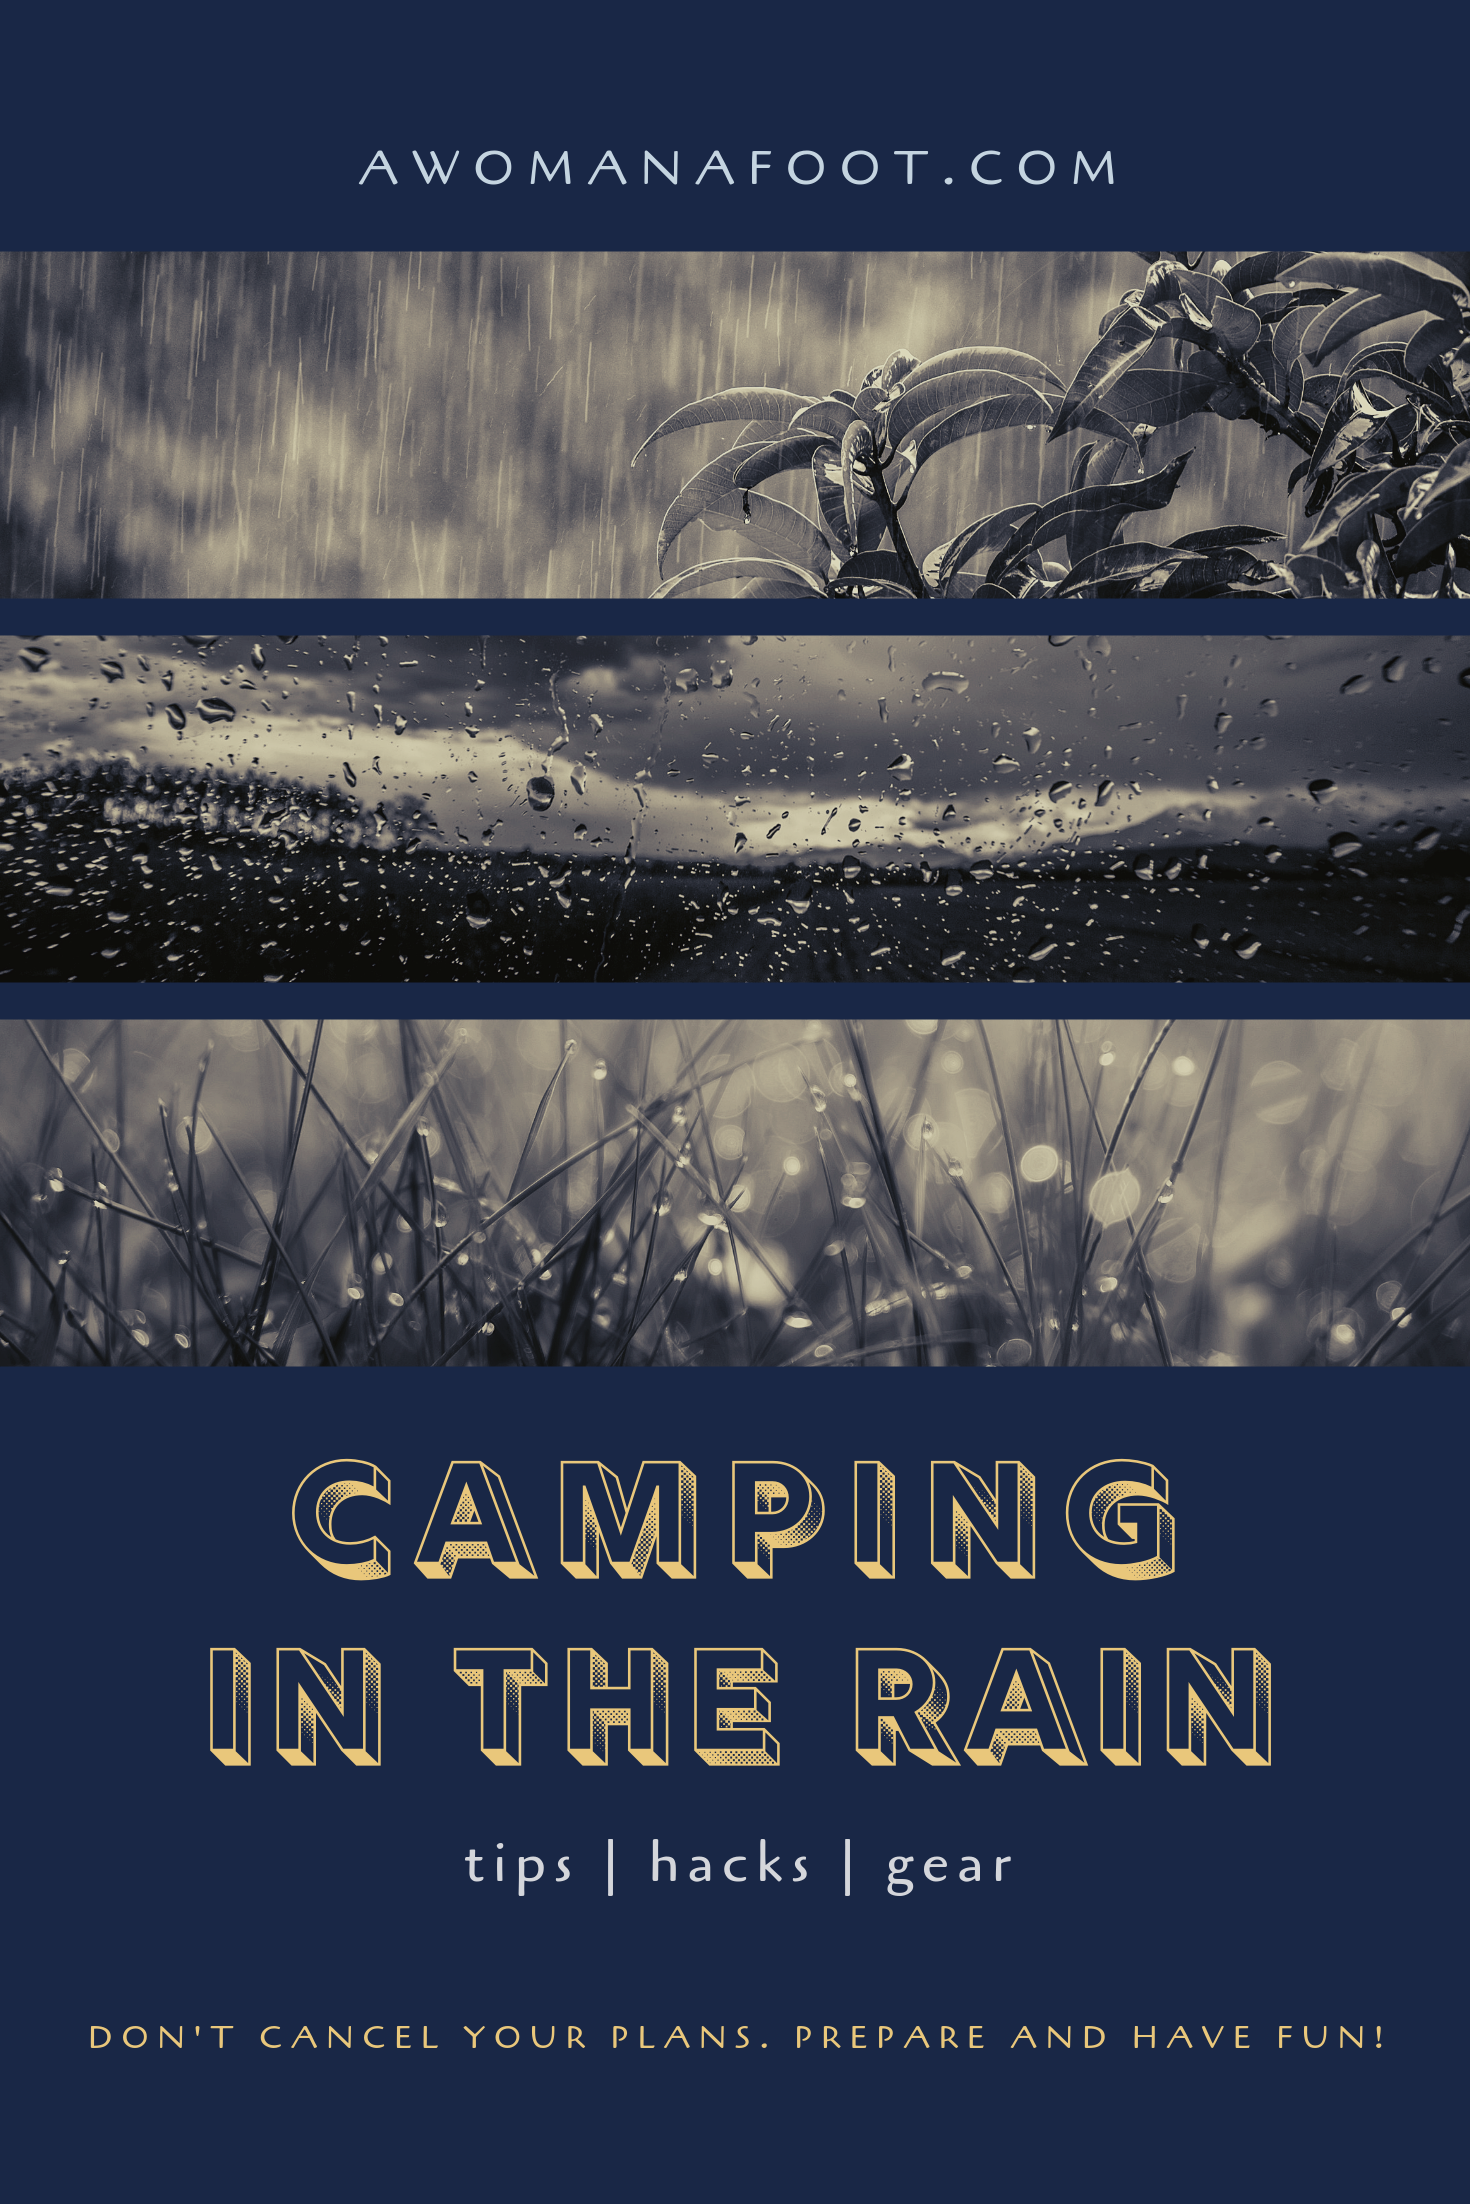 Is there rain in the forecast? Don't cancel your camping trip just yet! Learn all about camping in the rain @ AWOMANAFOOT.COM! | Tips, hacks and gear for camping in the rain | Camping safety | How to camp when it's raining | Camping in bad weather | Hiking & Camping Tips | Backpacking Advice | #Camping #Backpacking #Rain #Adventure #Gear #Travel